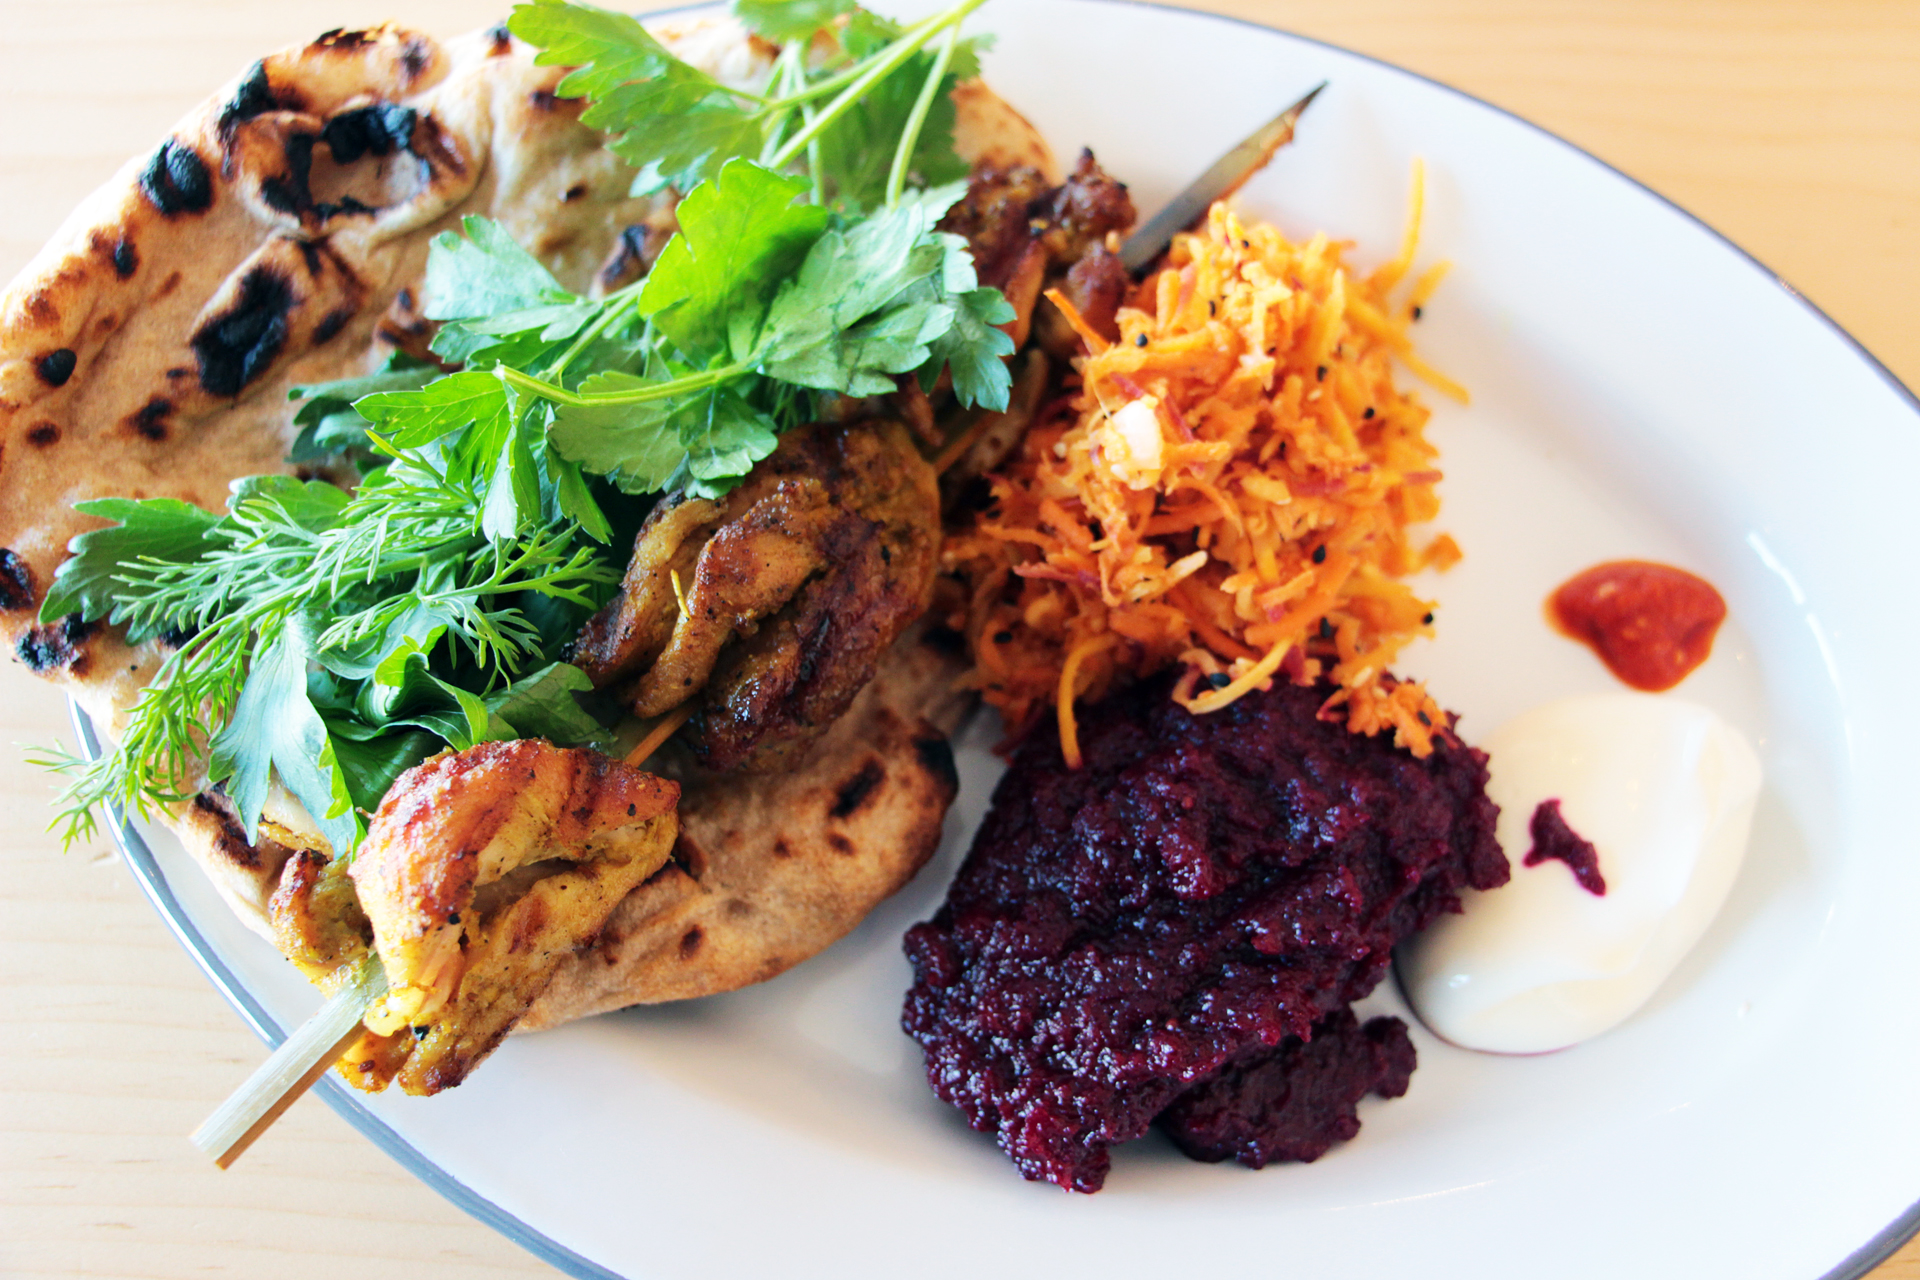 Chicken Kebab Plate, in a marinade of turmeric and other spices, grilled skin-on and served with flatbread, a raw carrot salad with caraway and mustard seeds and mashed beets.